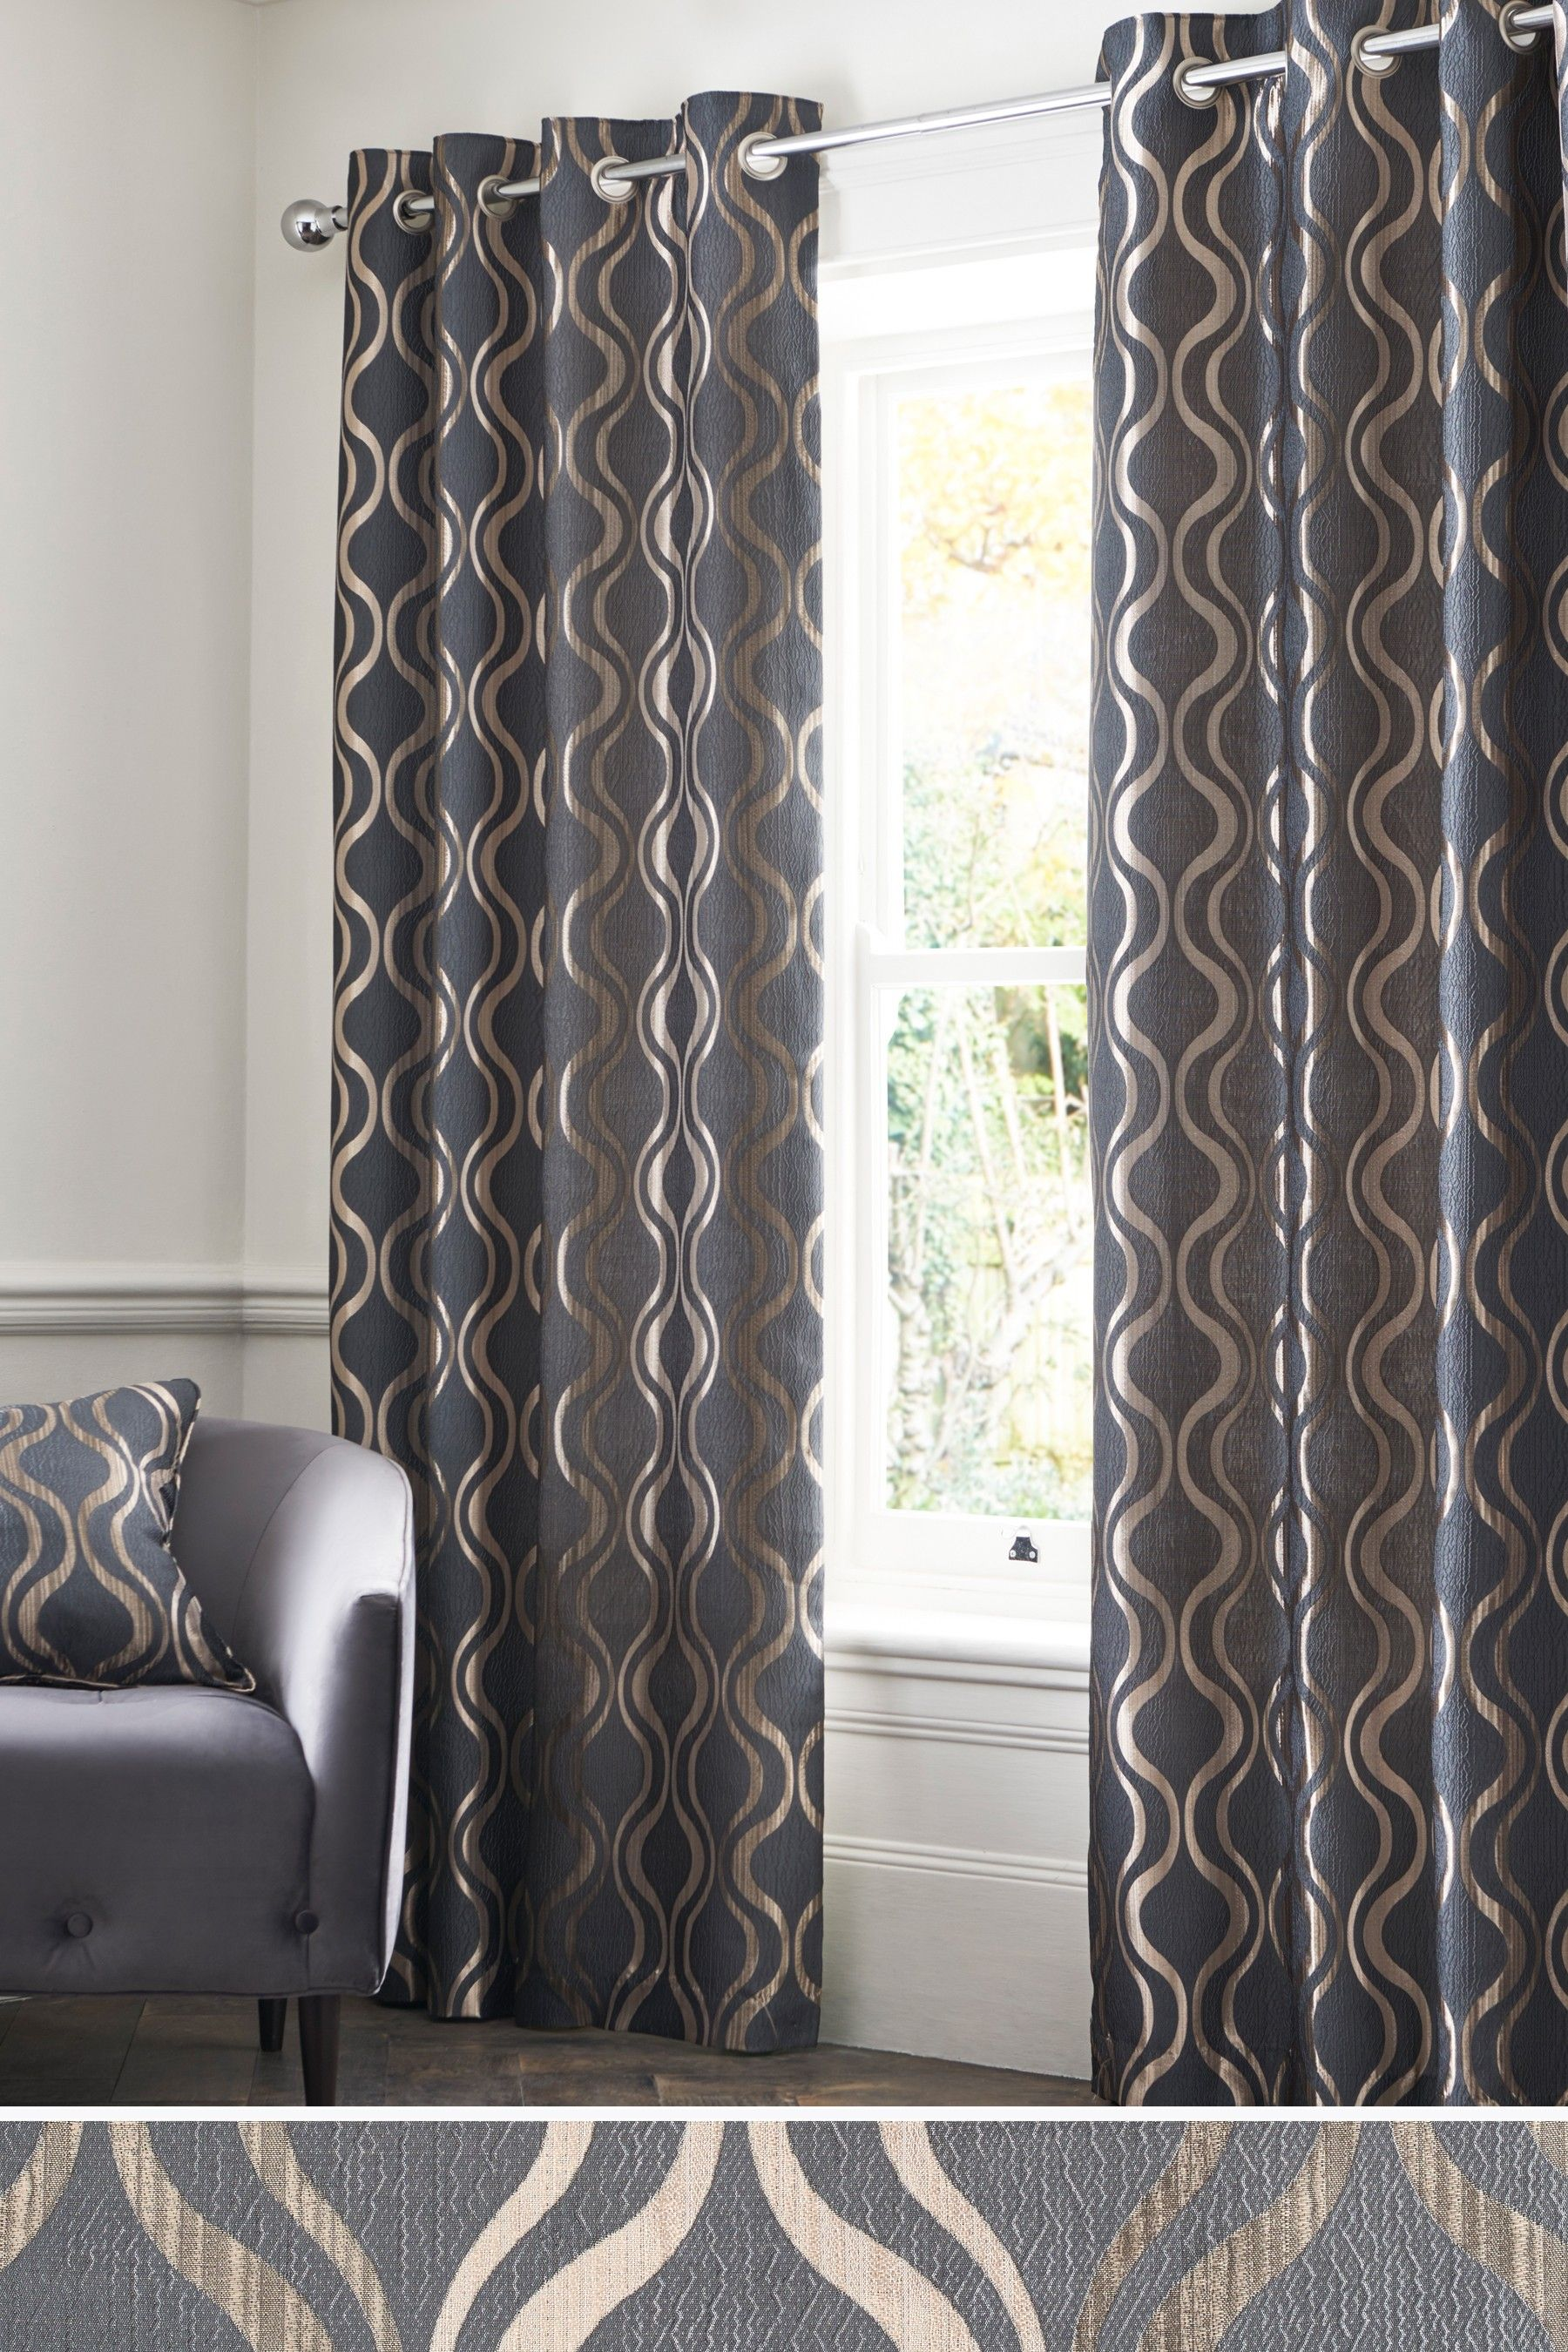 Next Geo Wave Jacquard Eyelet Curtains - Grey | Curtains ...